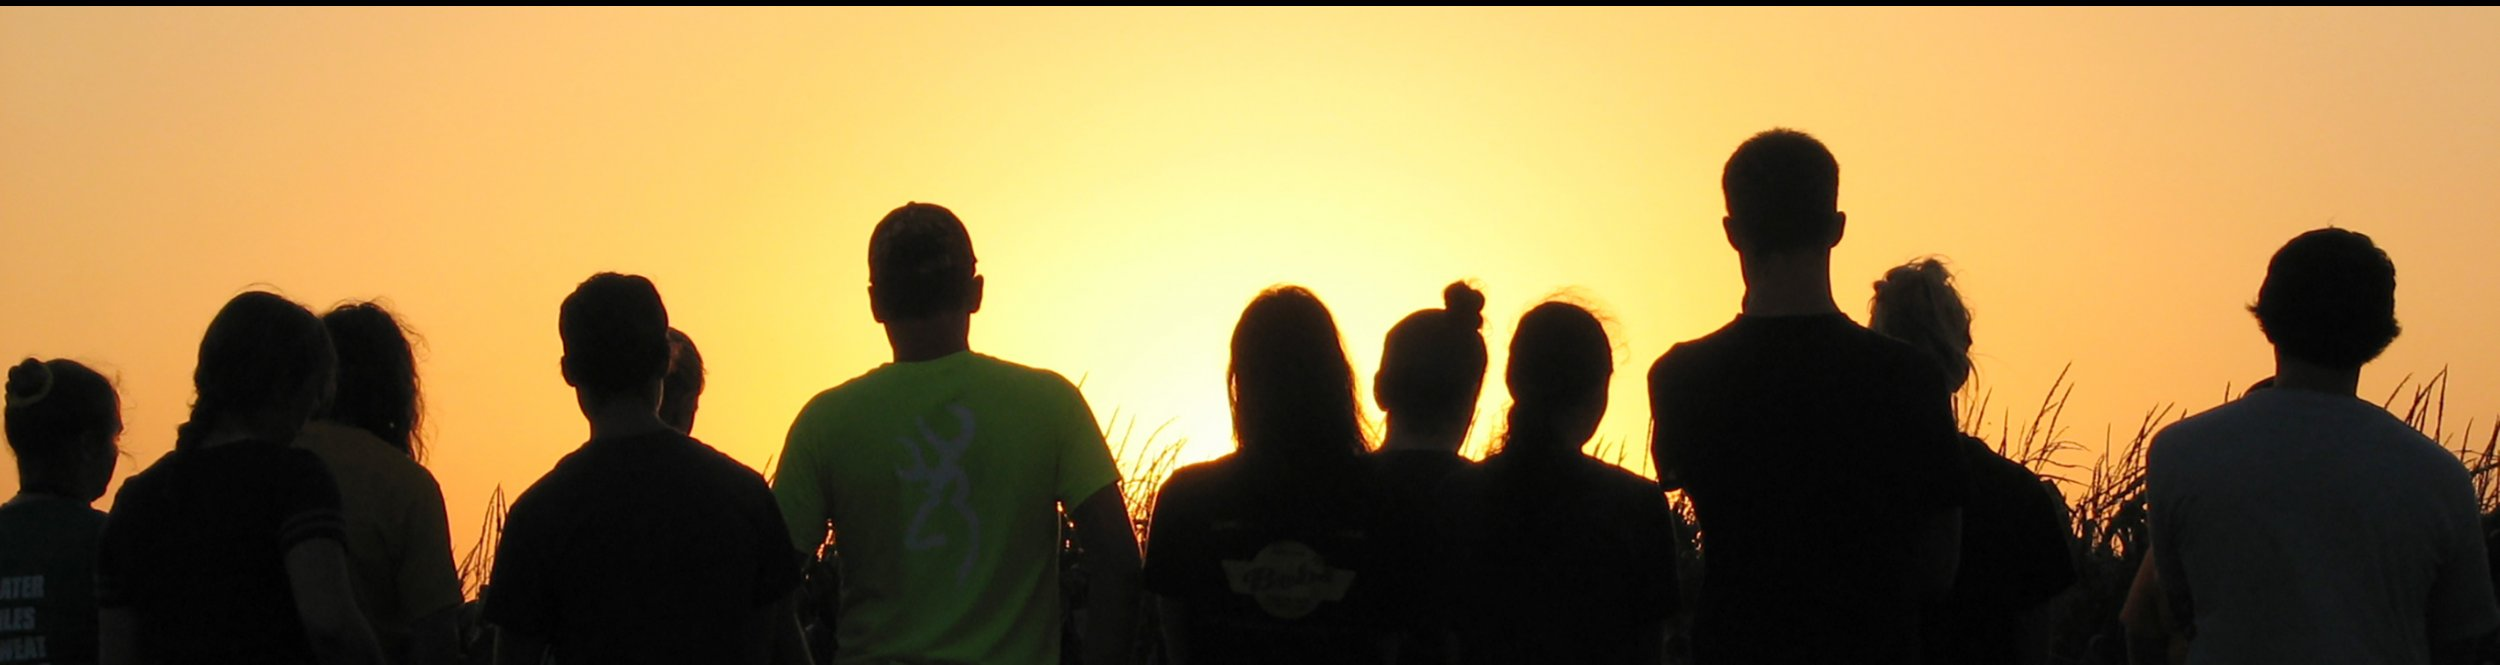 Silhouettes of people in the sunset.